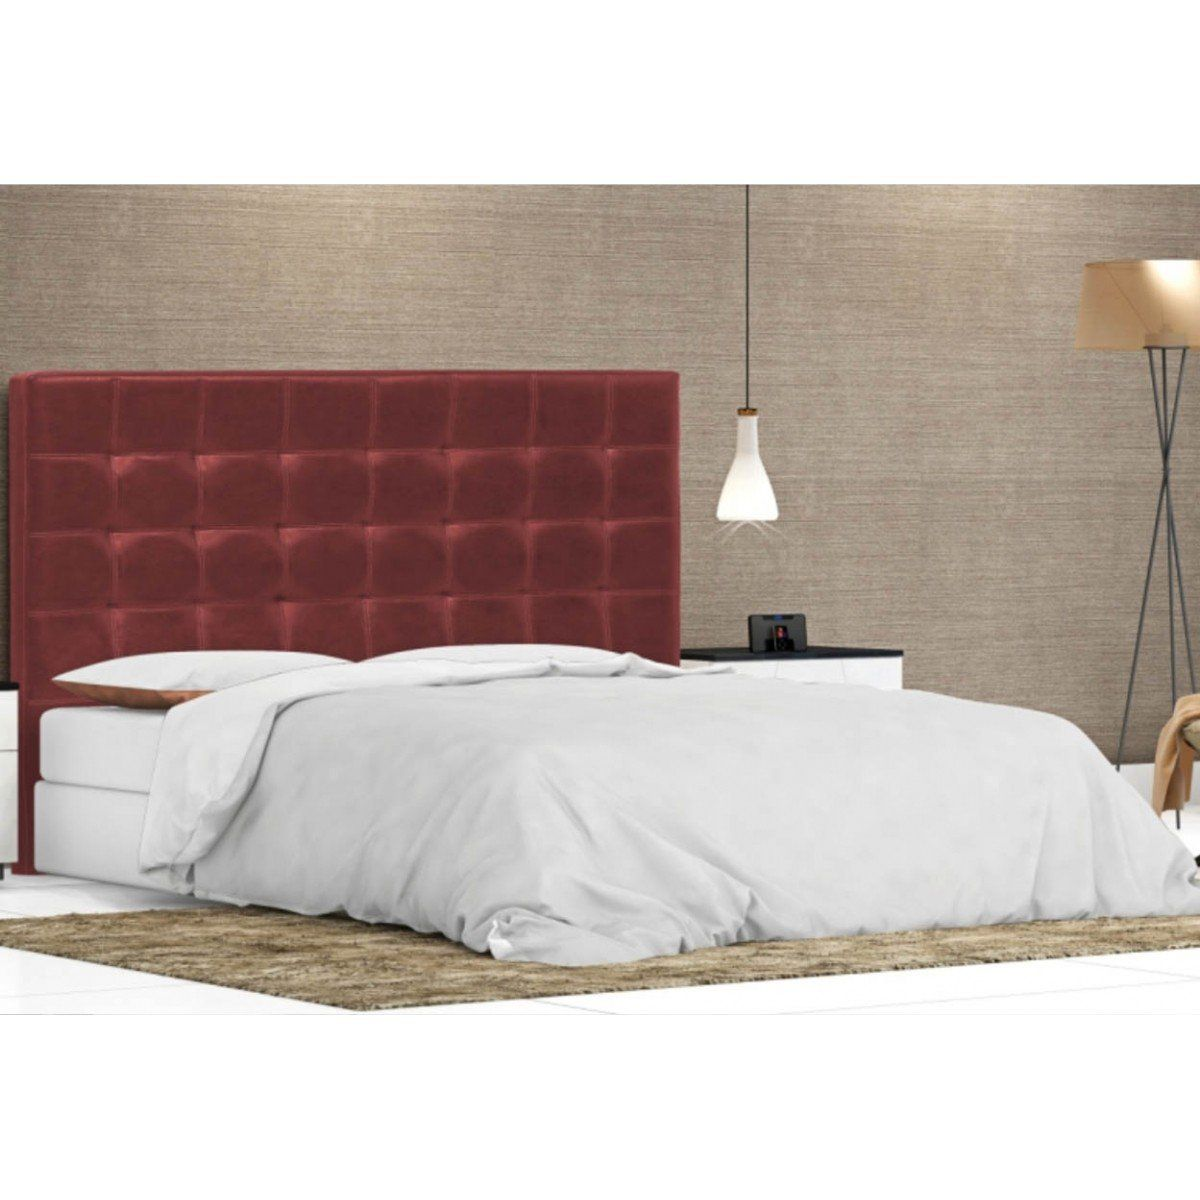 Cabeceira Cama Box Casal King Londres 195cm - Perfan